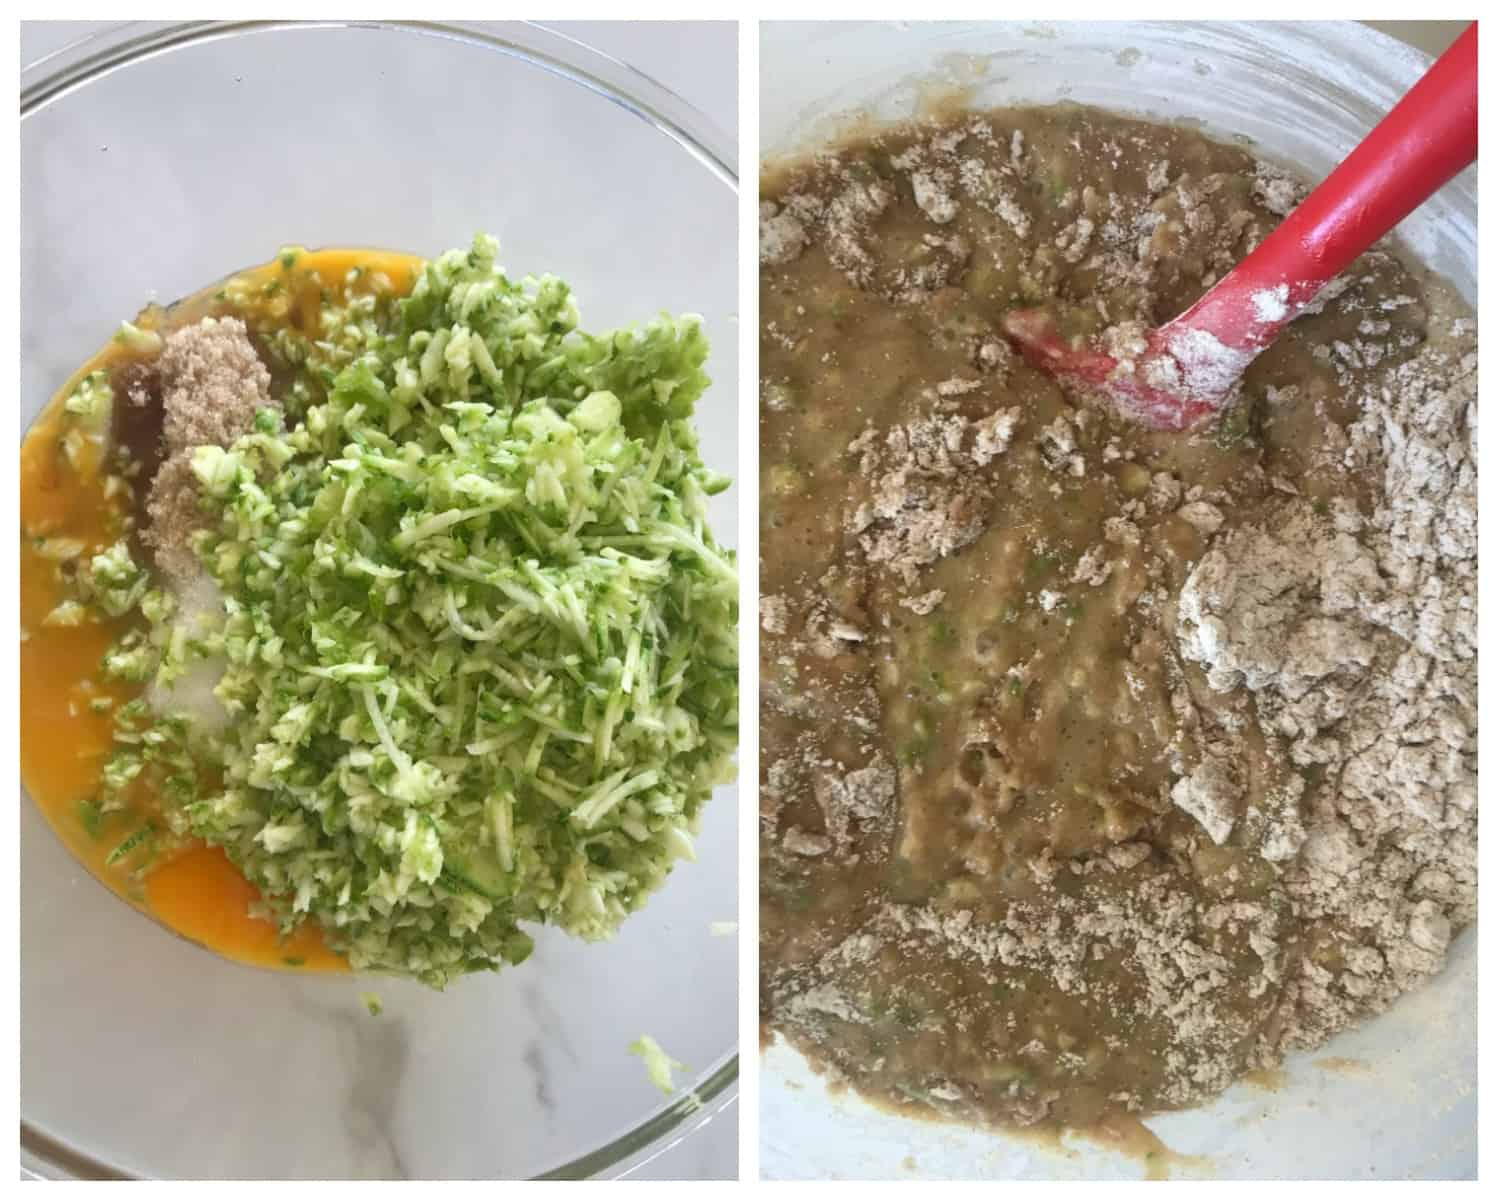 Collage of bowls with eggs and zucchini, and batter with flour spots, red spatula